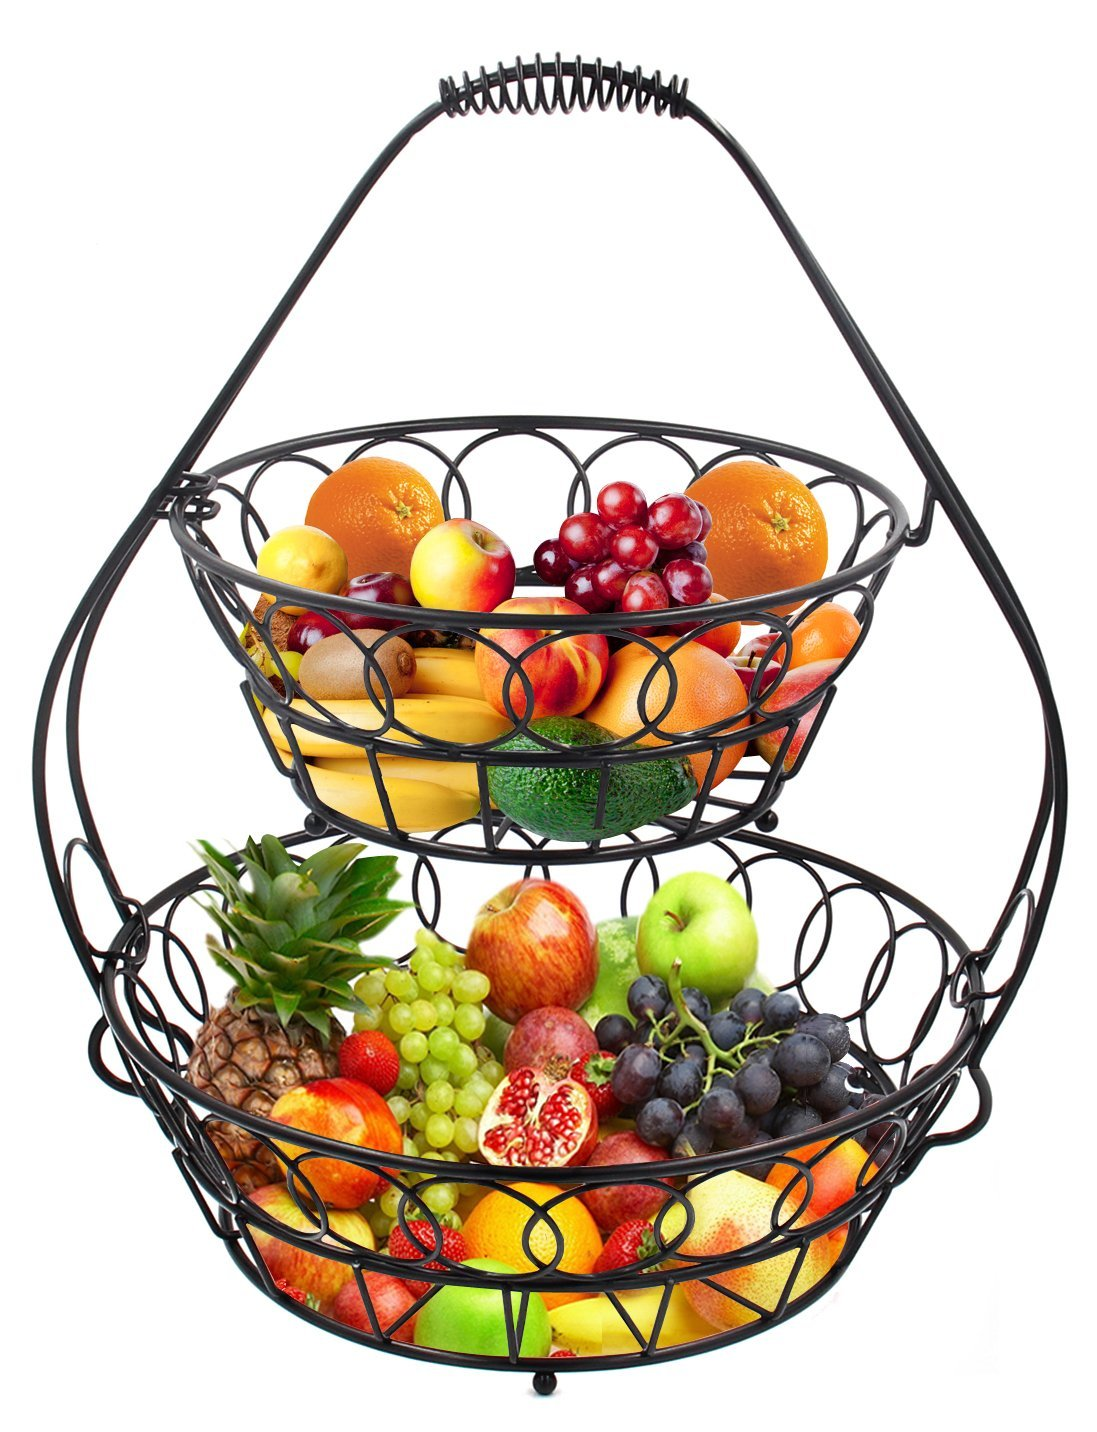 1097x1432 Esylife 2 Tier Fruit Basket Assembled Fruit Bowl Black, 29.85cm